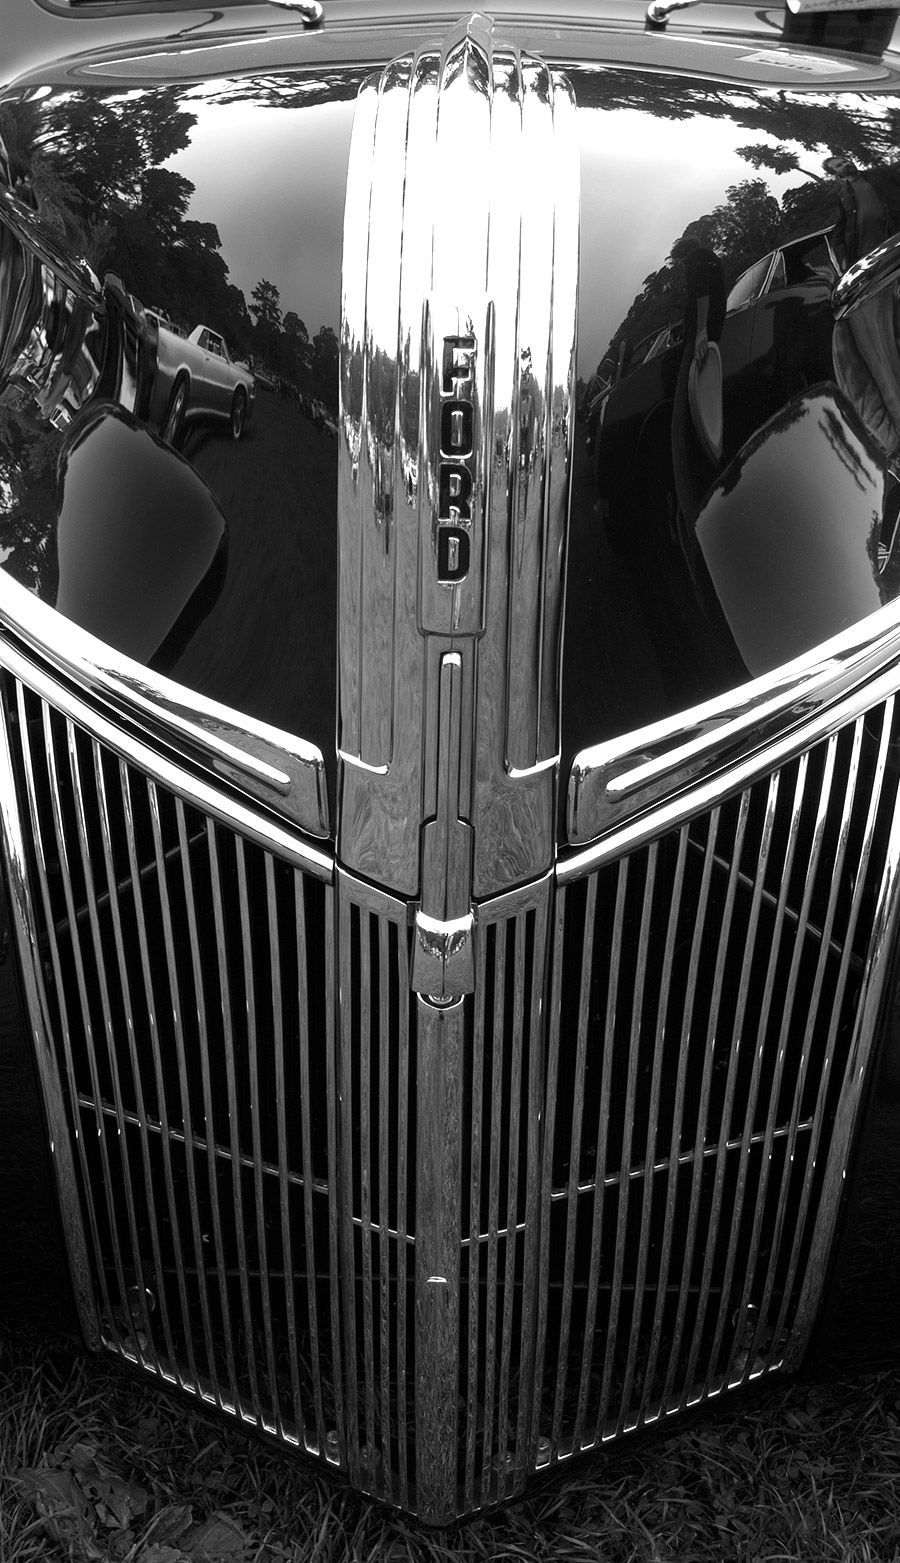 1941 Ford Pickup Check Out The 41 Lincoln Grill If You Like This One Ford Pickup Old Ford Trucks Ford Classic Cars